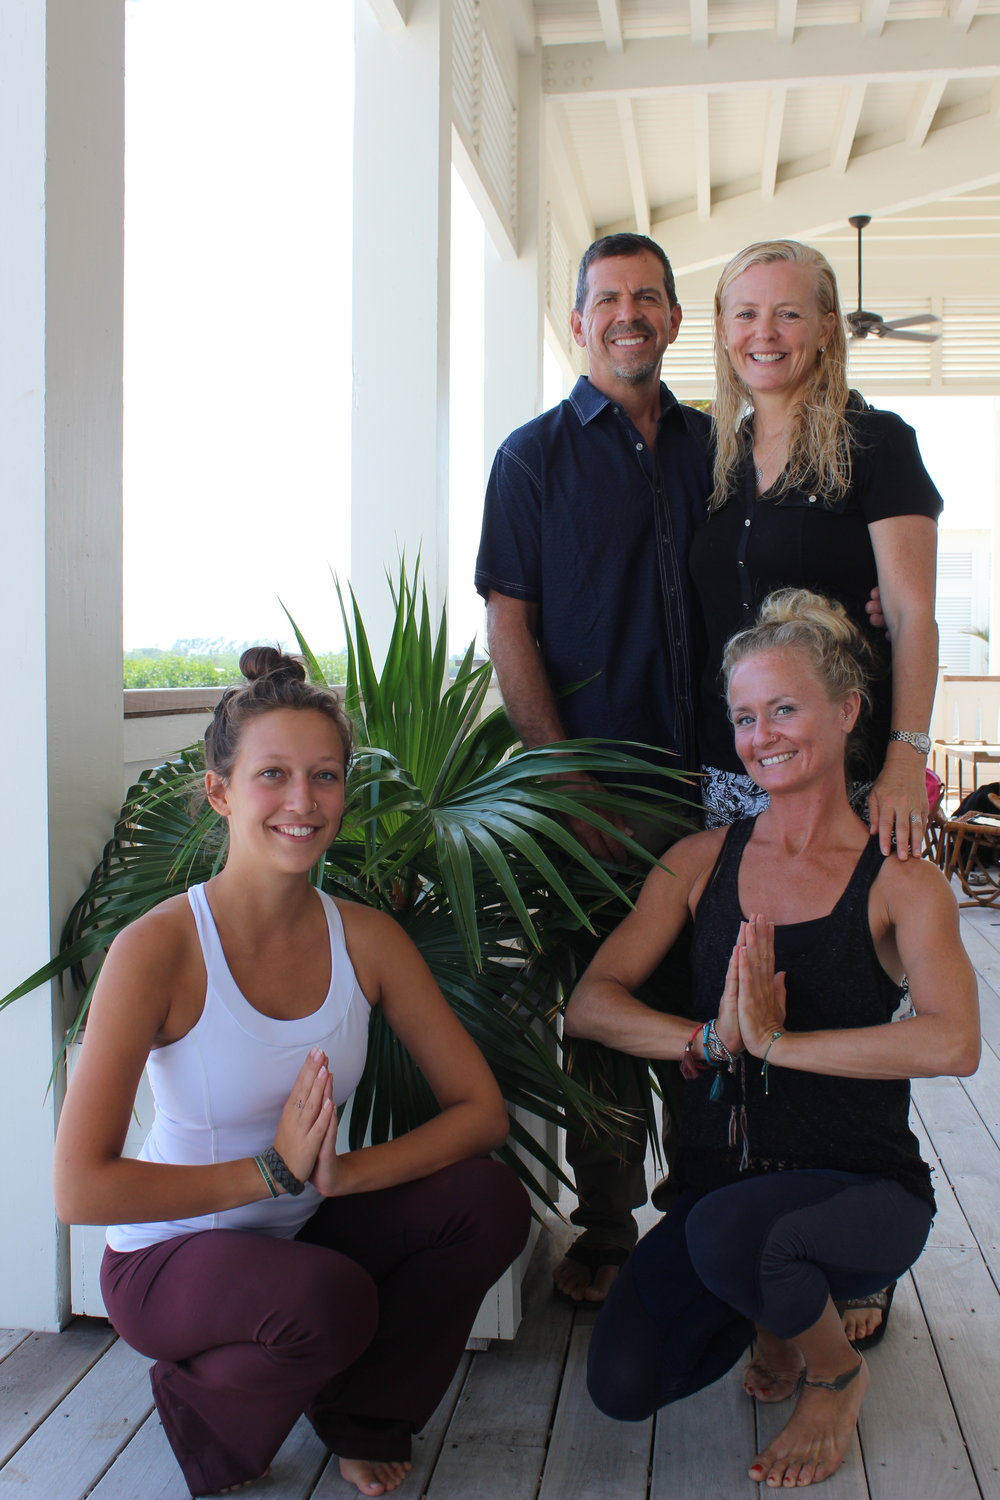 The Science and Soul Wellness team welcomes you to their new studio at Mahogany Bay Village!